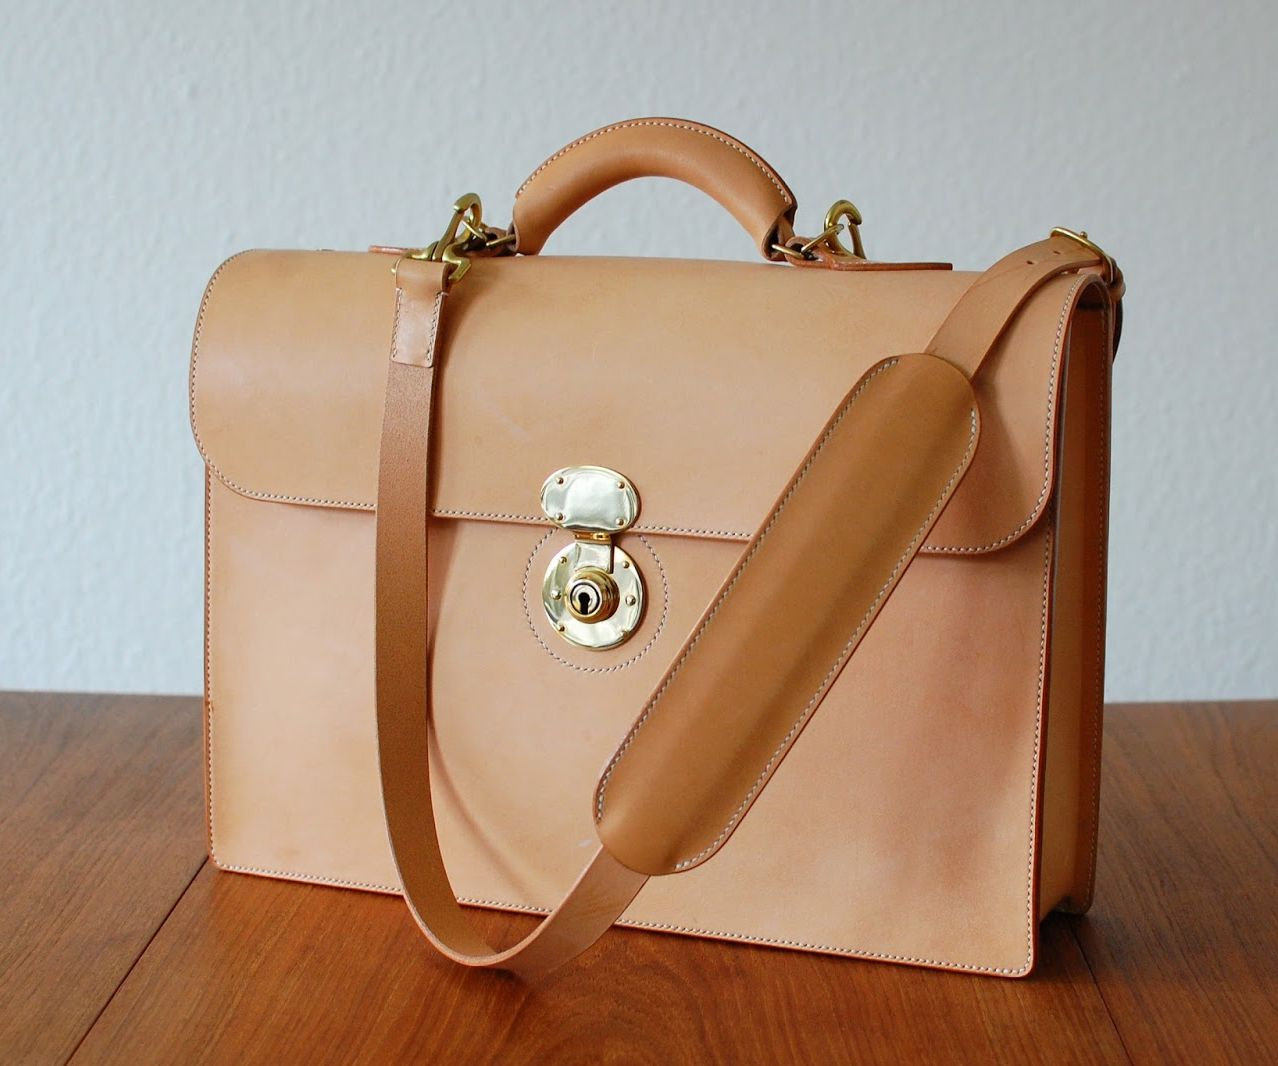 Briefcase With a 3 Piece Gusset